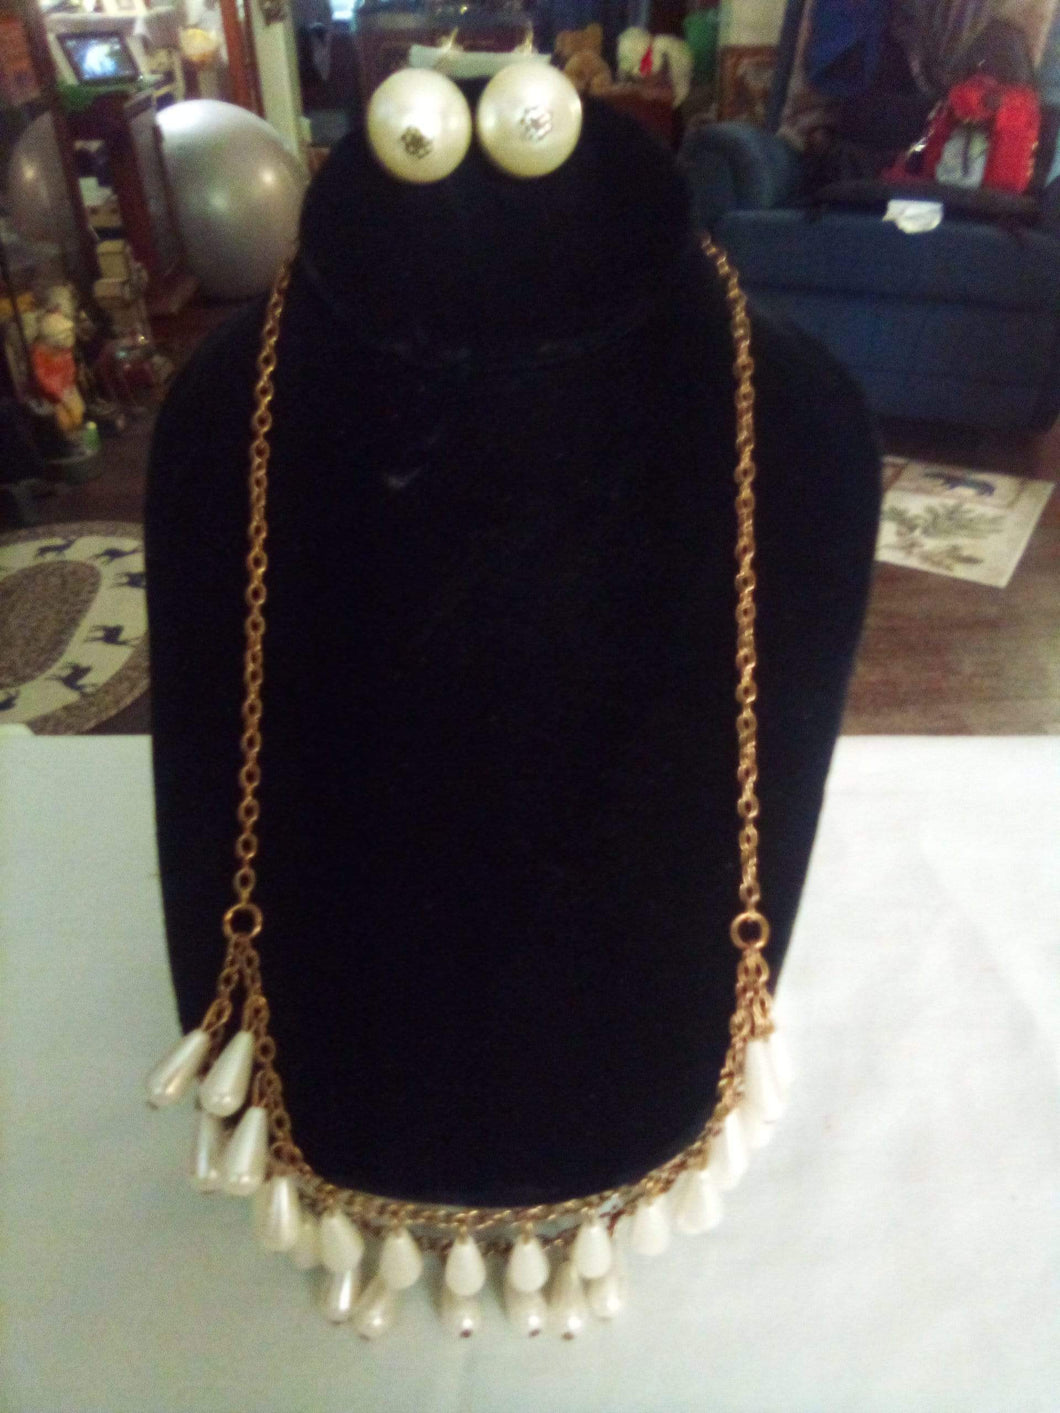 Pretty vintage pearl like necklace and earrings - B&P'sringsnthings